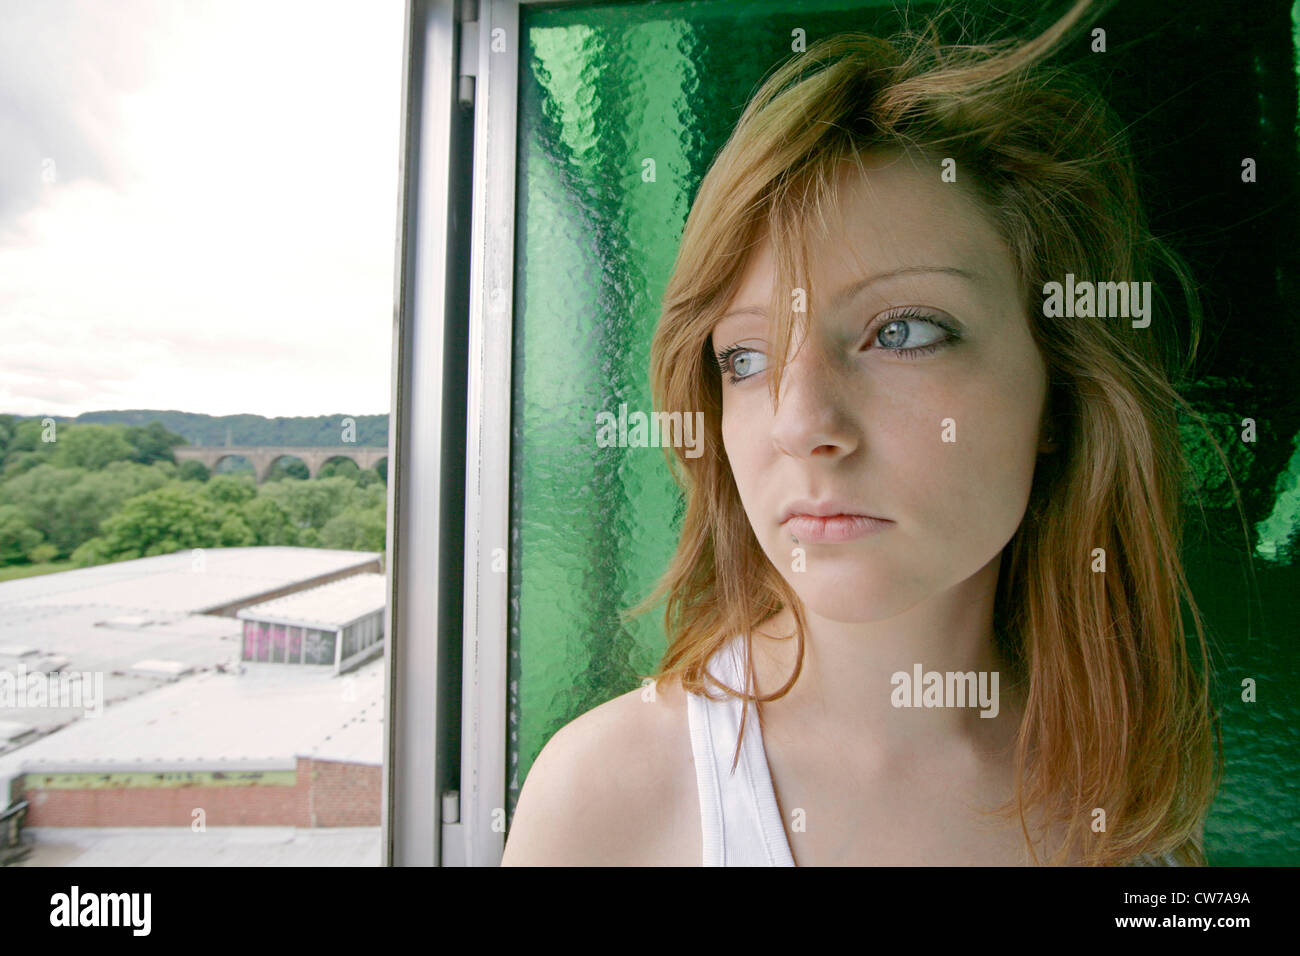 melancholy redheaded young woman looking out of opened window, Germany Stock Photo